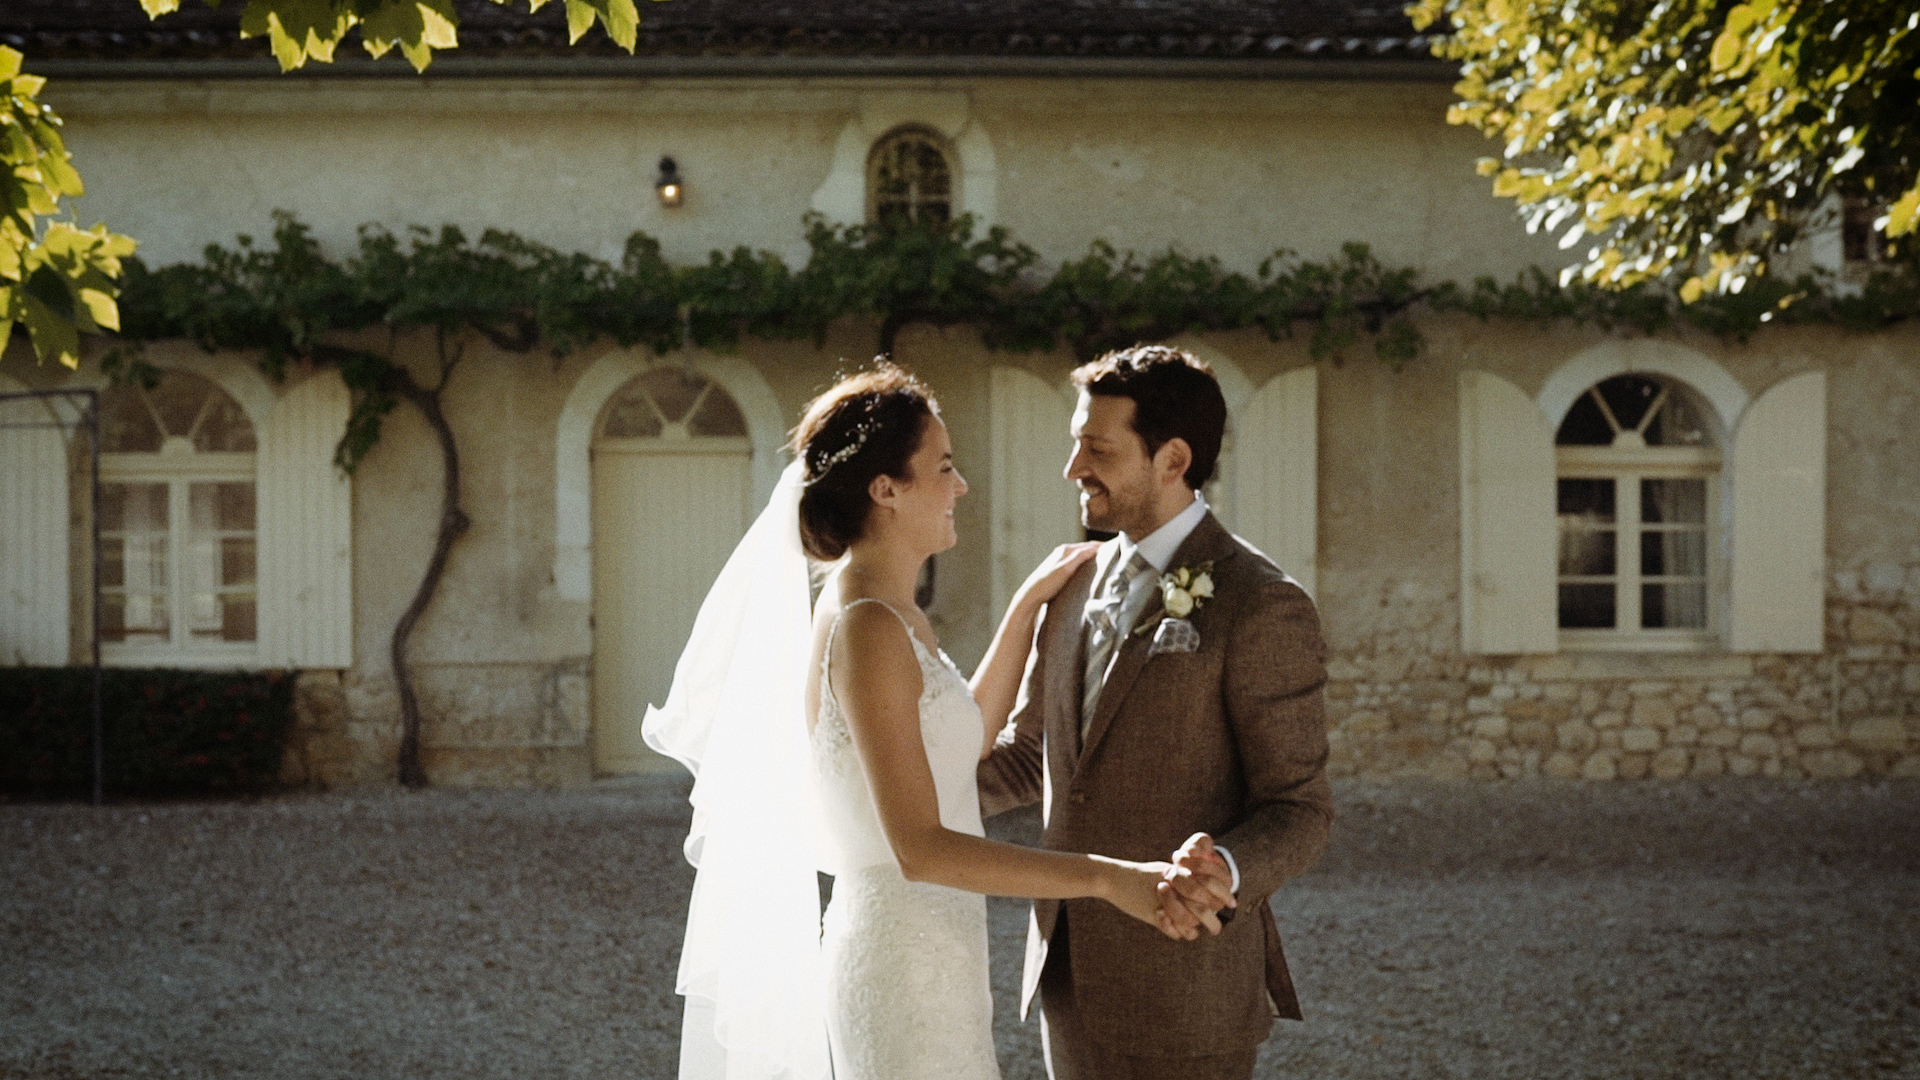 Jade + William | Soulac-sur-Mer, France | Chateau Soulac